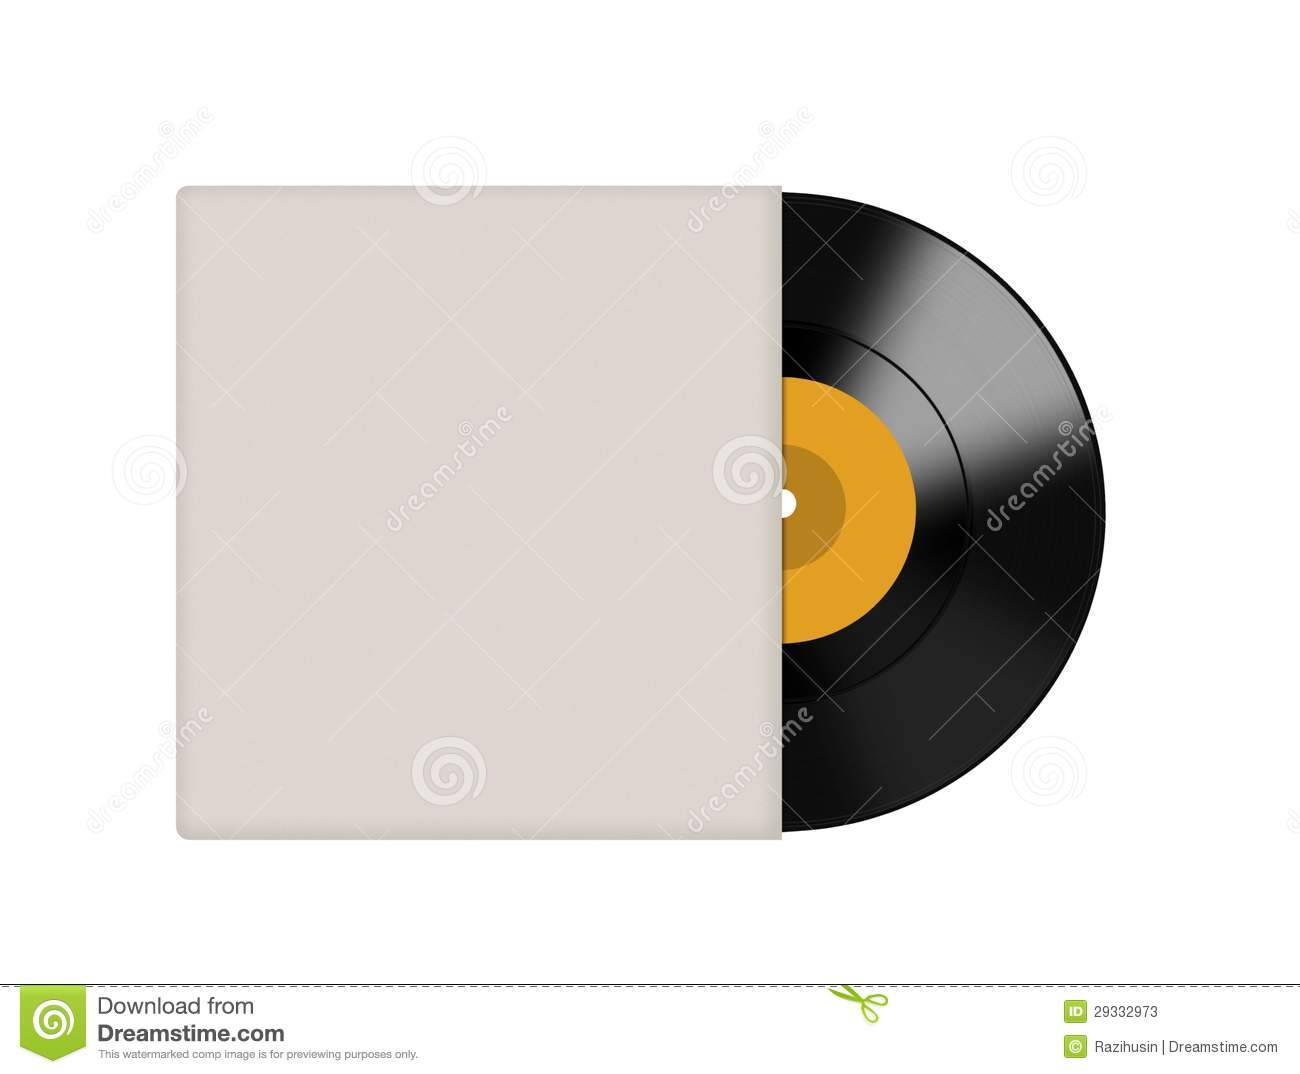 Vinyl Record With Blank Cover Stock Photos - Image: 29332973